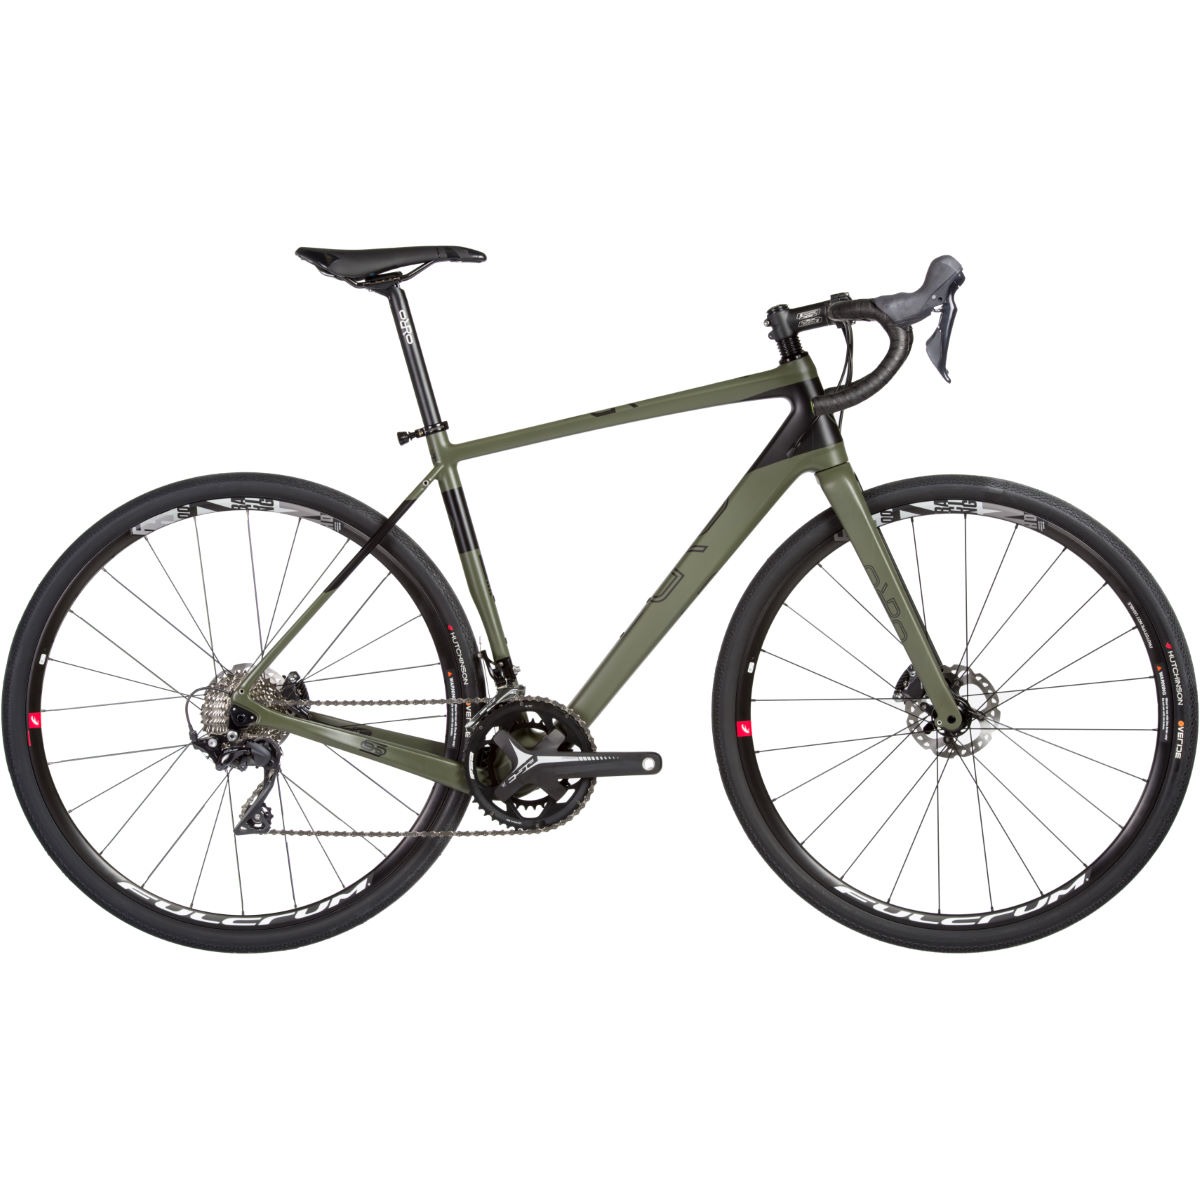 Orro TERRA C 105 Adventure (2019) Bike - Bicicletas de Gravel